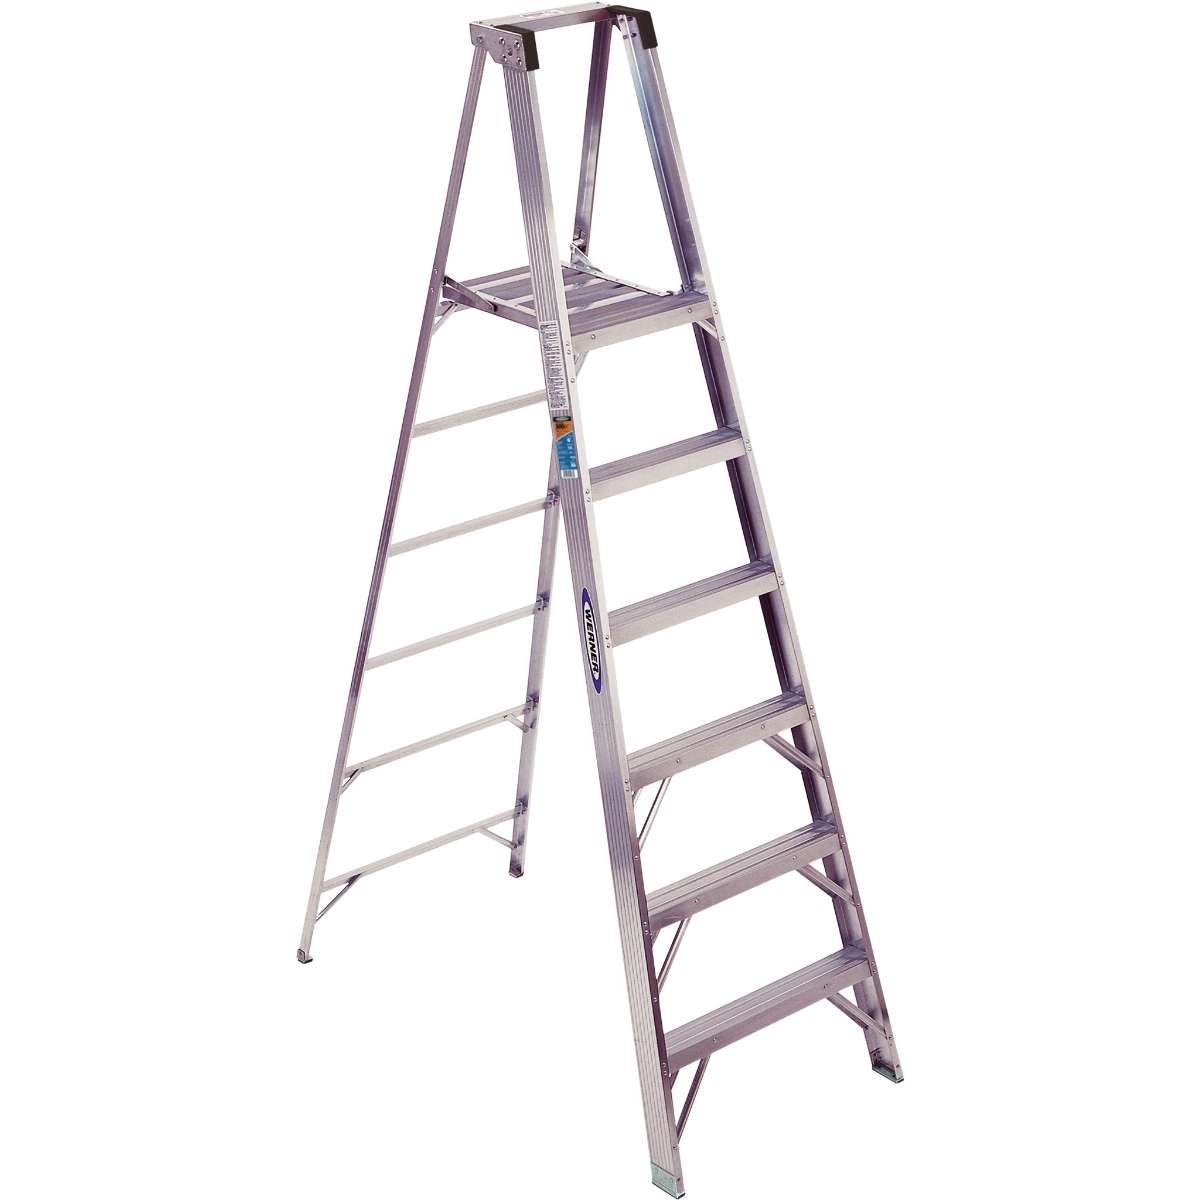 Aluminum Platform Step Ladder - 300 lb. Capacity (P370 Series)